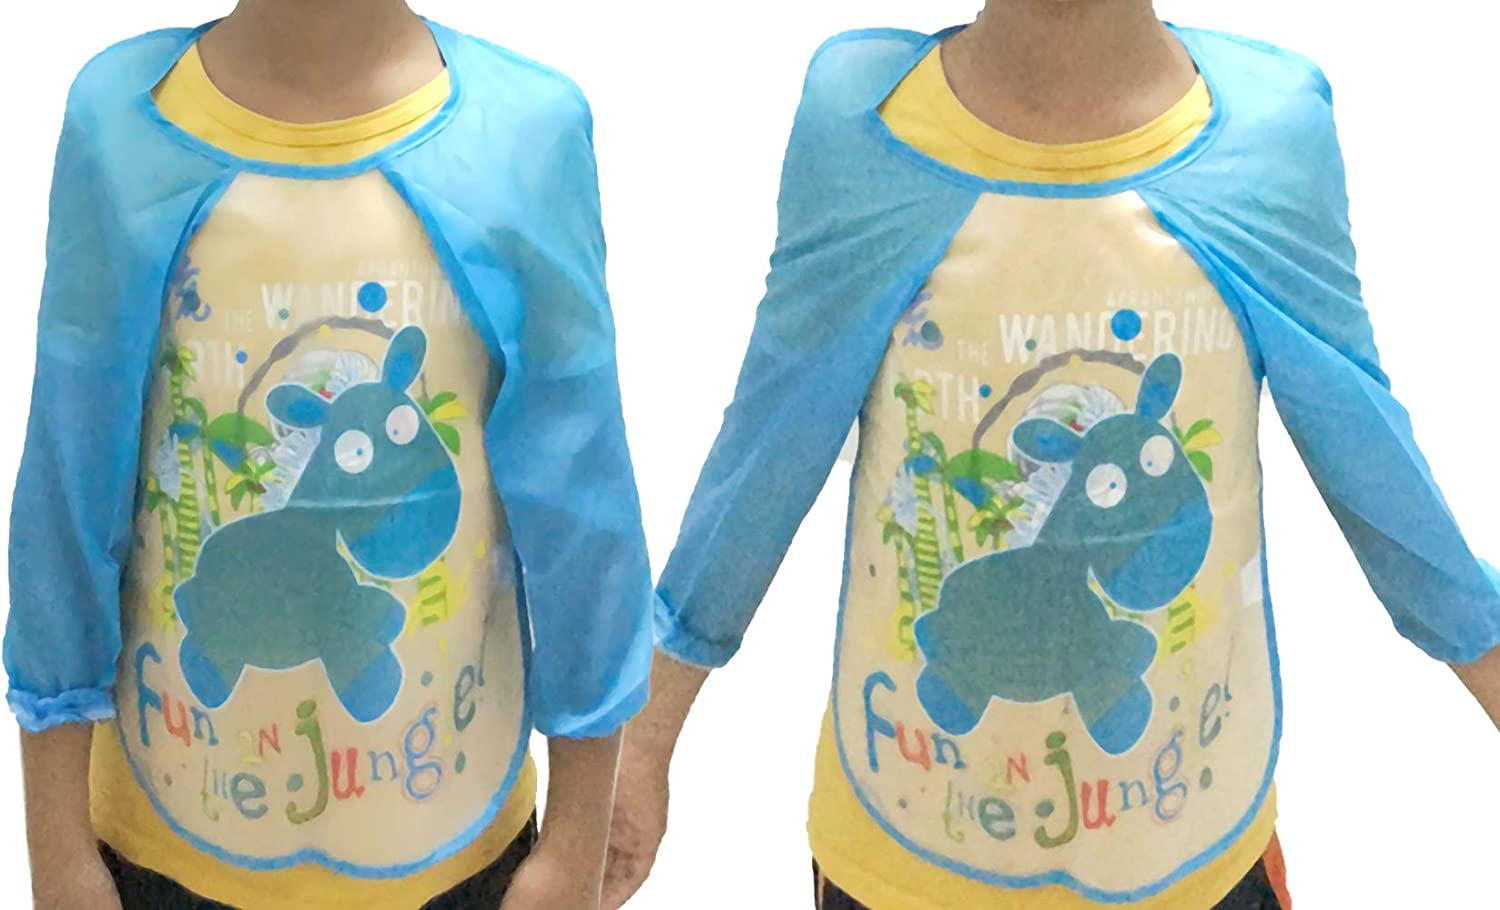 AUEAR 4 Pack Waterproof Kids Painting Aprons Baby Long Sleeve Painting Smock for Toddler Kids